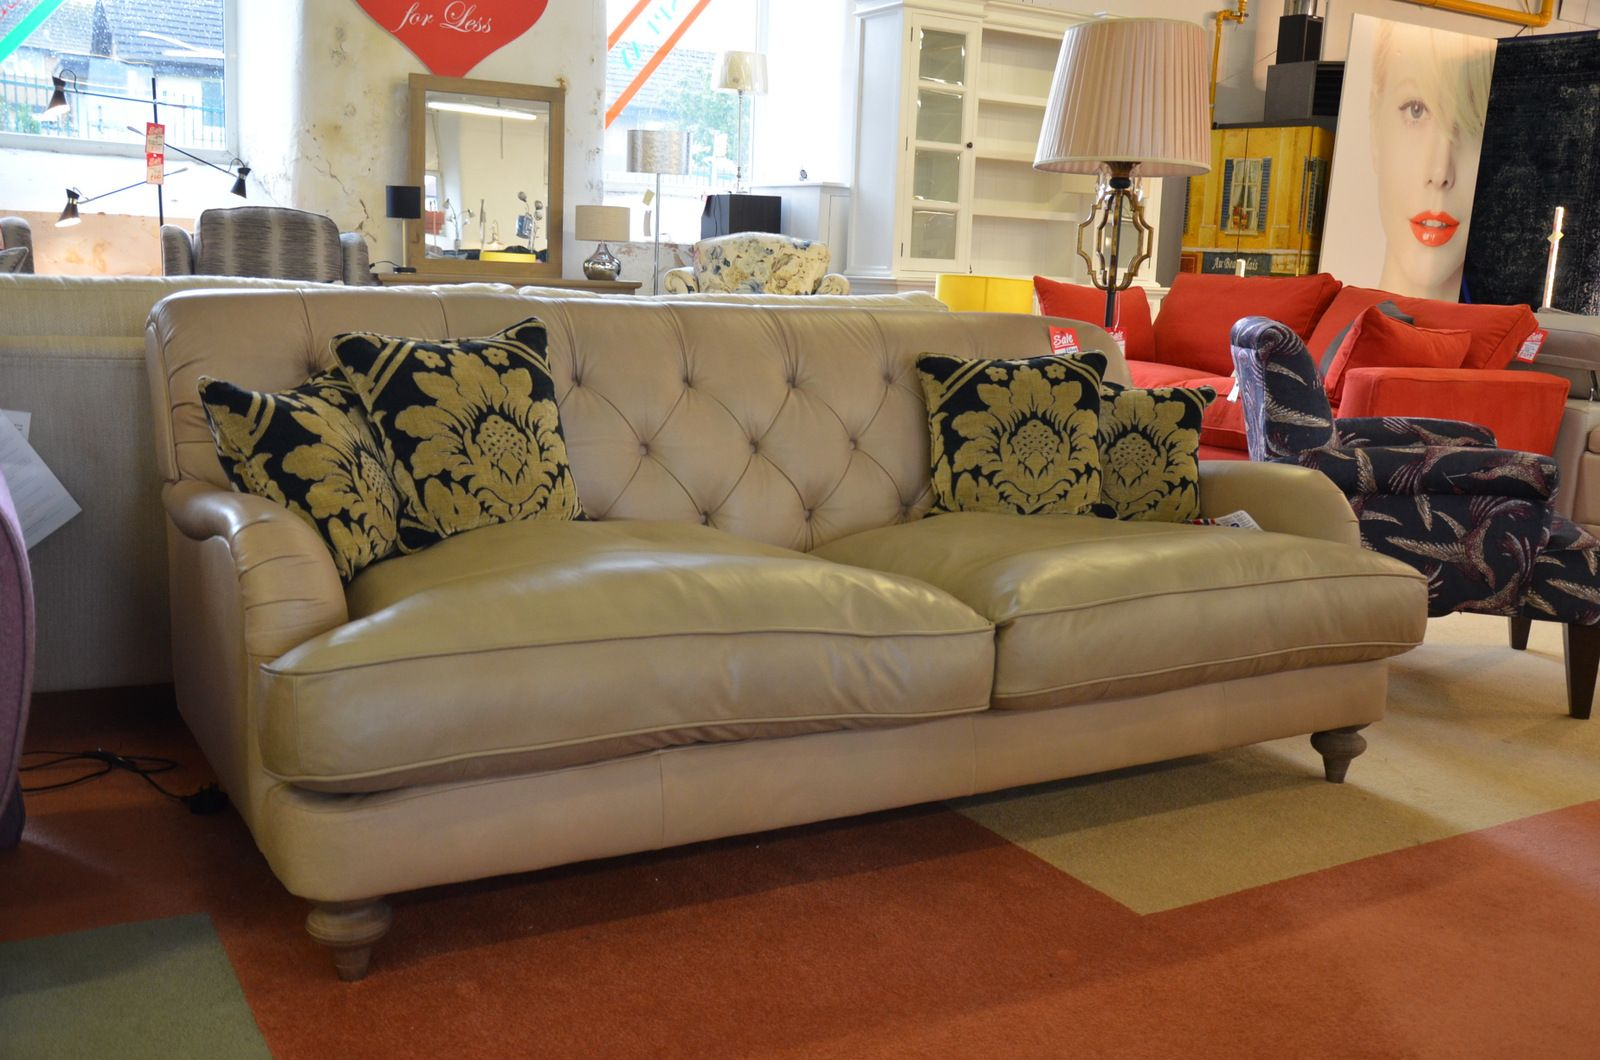 Strange Windermere Large 3 Seater Sofa In Tan Beige Leather Caraccident5 Cool Chair Designs And Ideas Caraccident5Info